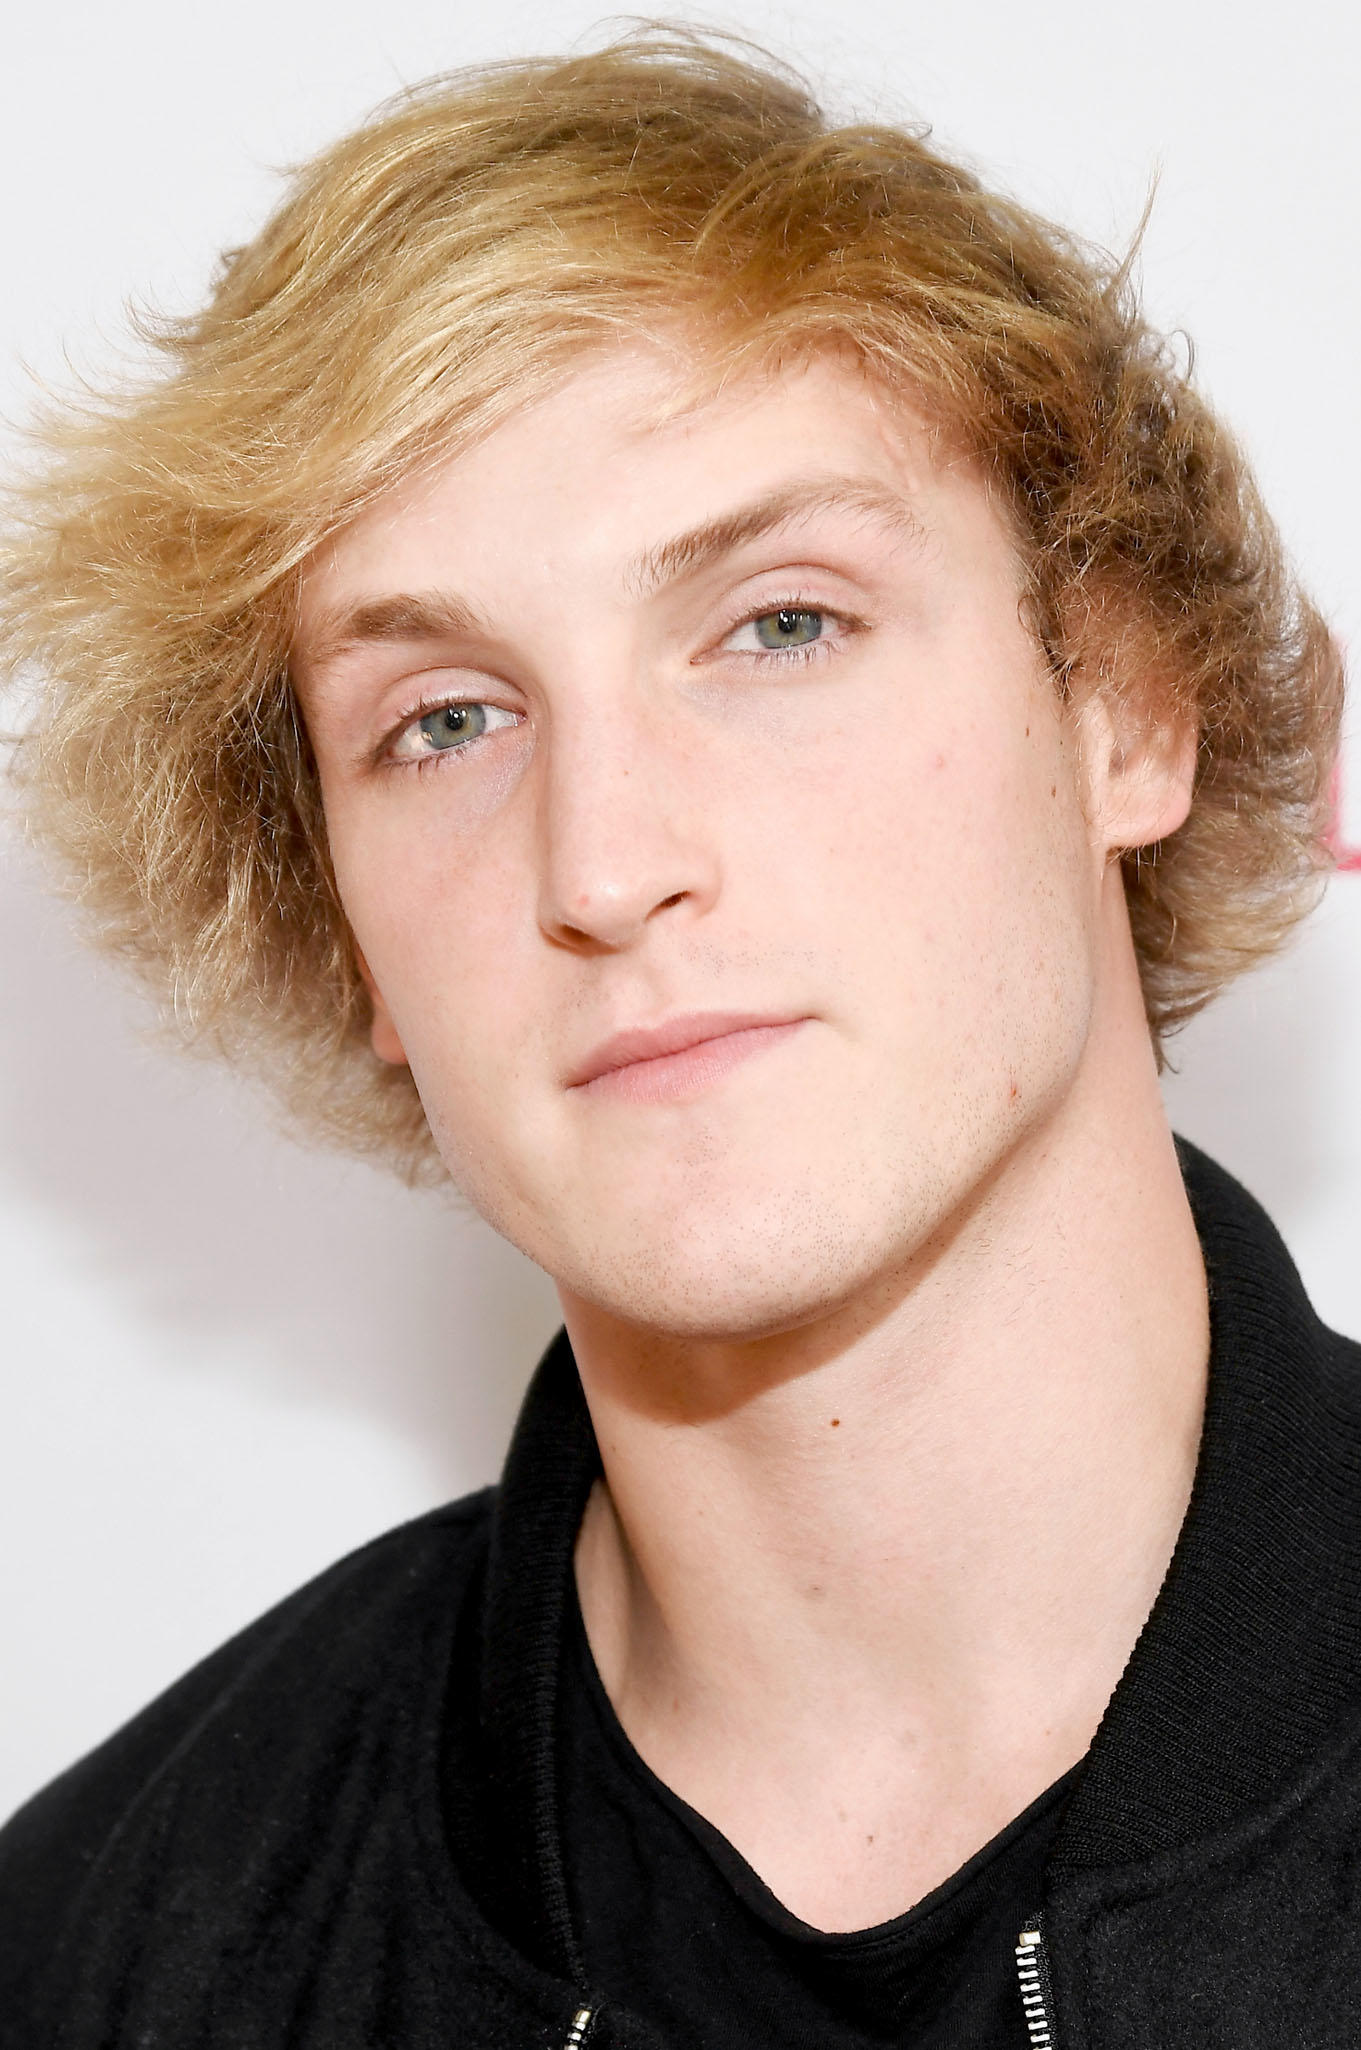 Logan Paul at the 6th annual Streamy Awards in Beverly Hills, California.